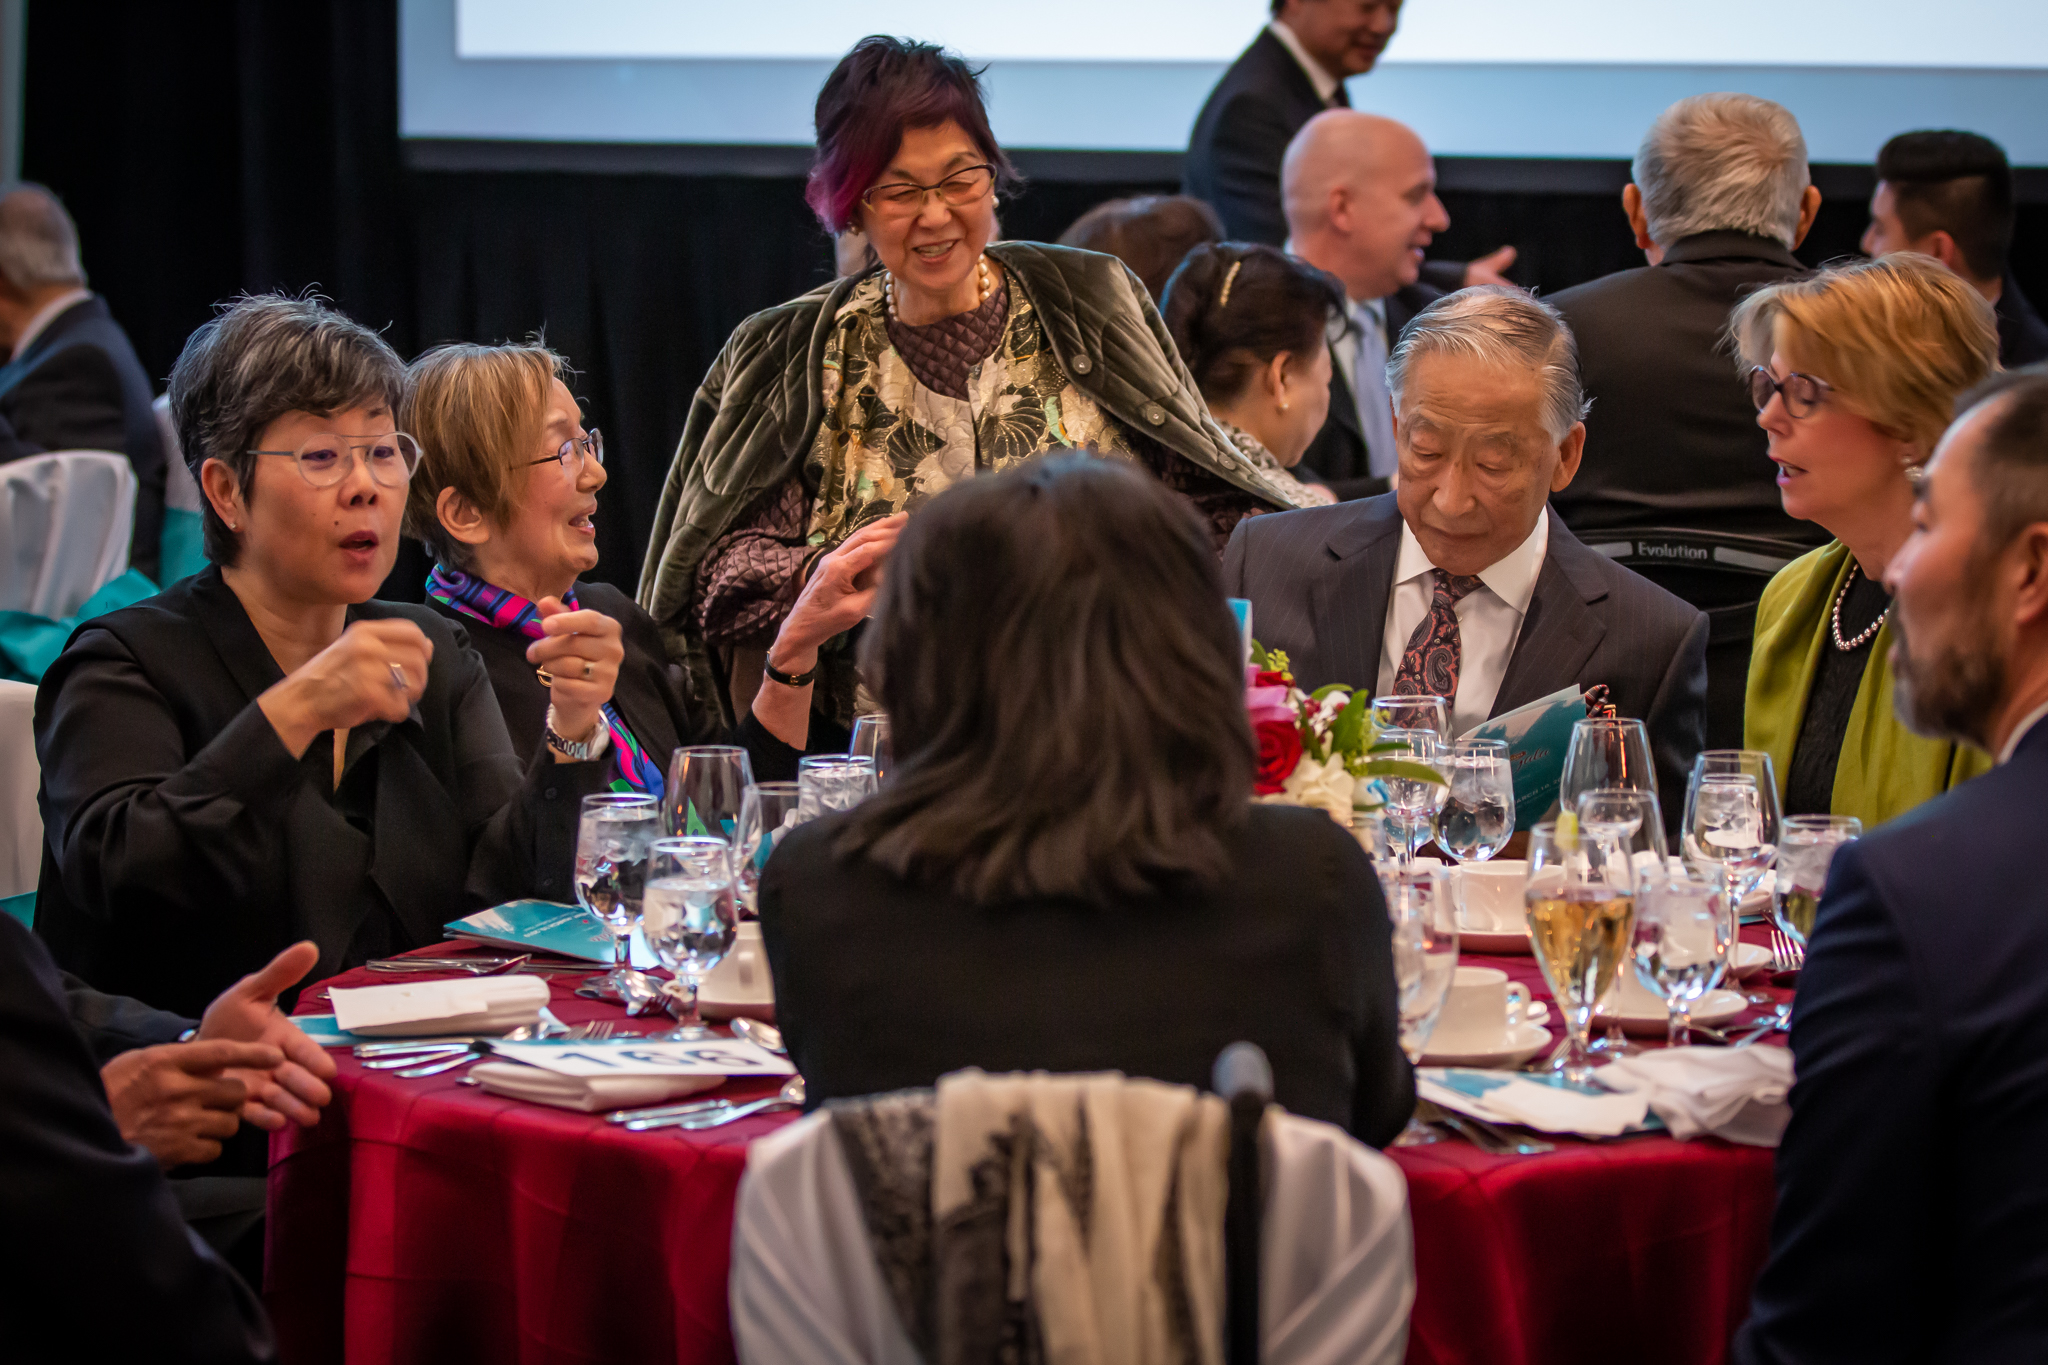 190310 Sakura Gala 2019 16-41-00 - Photo by Adam PW Smith.jpg